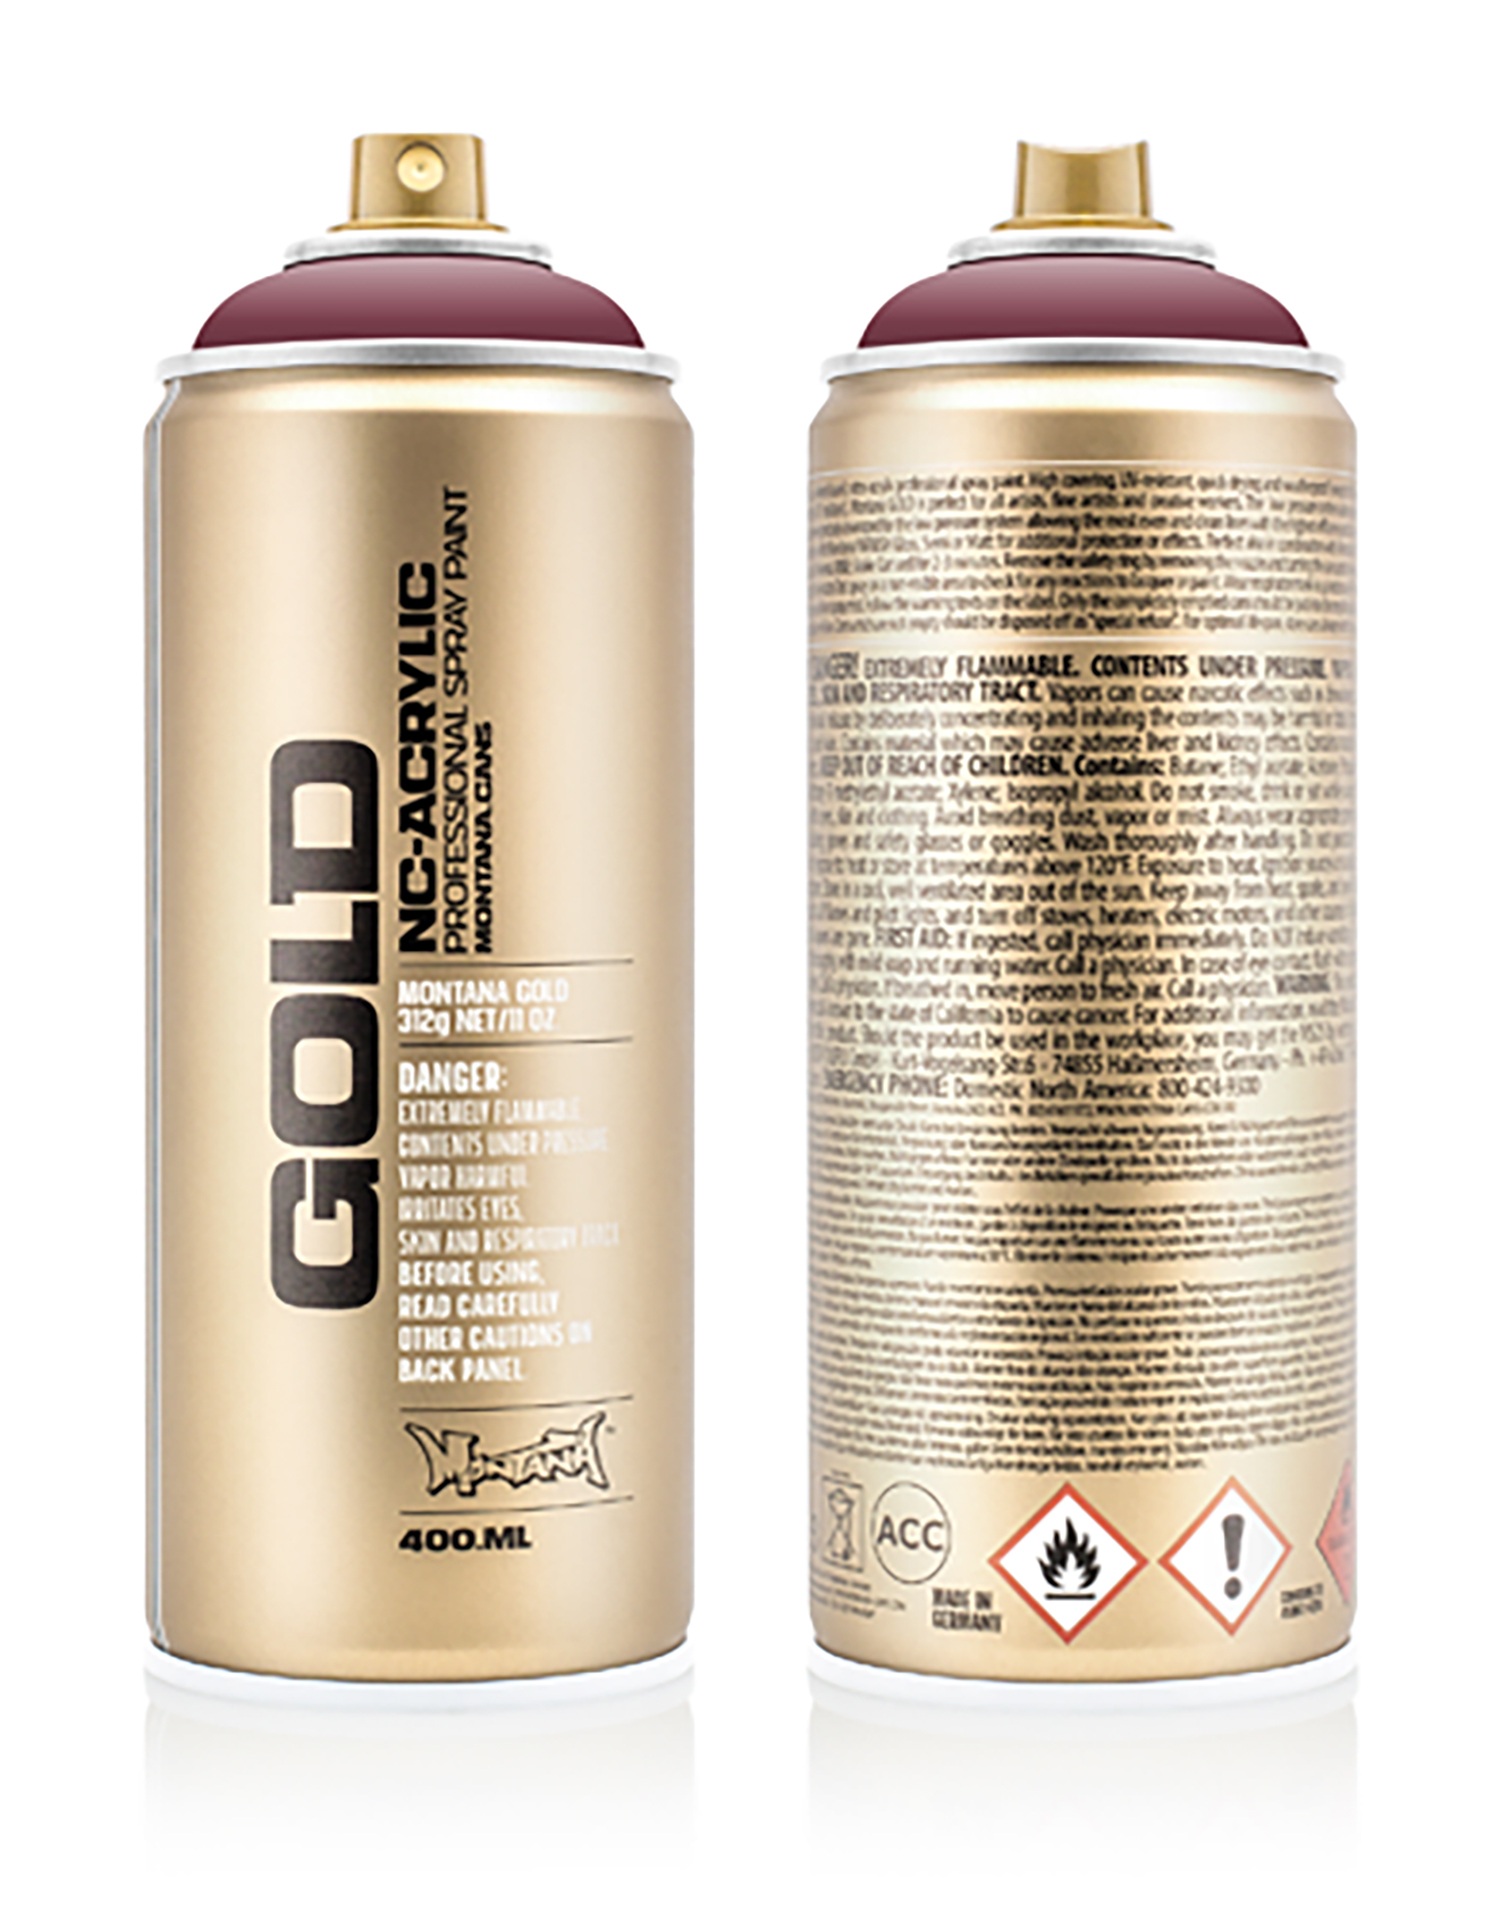 MONTANA-GOLD-SPRAY-400ML-G-4030